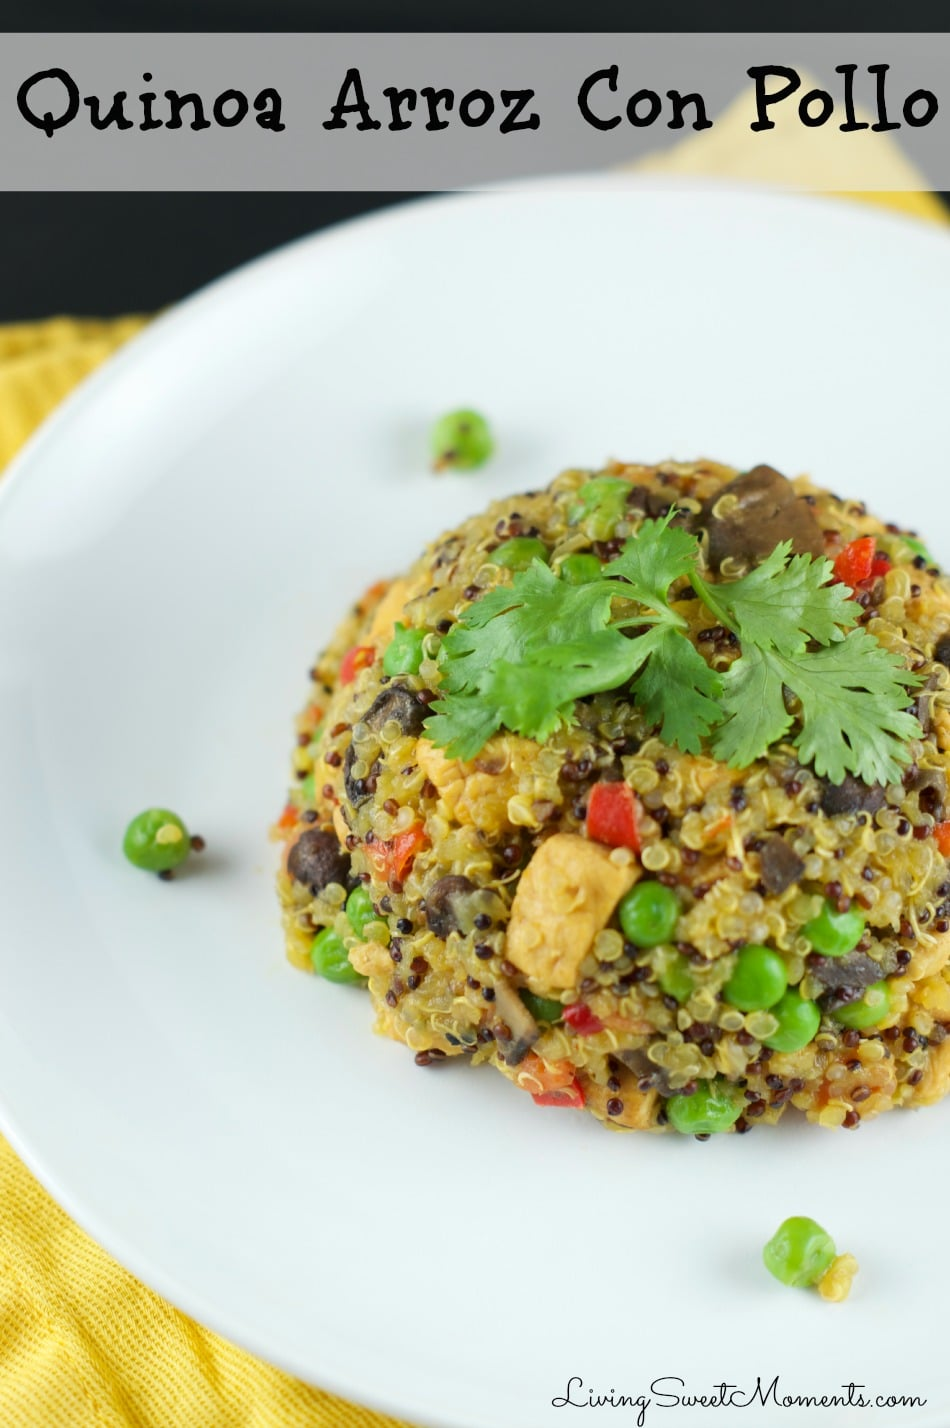 This delicious Quinoa Arroz con Pollo is the perfect one pot 30-minute weeknight dinner that is super easy to make. Enjoy this healthy latin twist tonight!